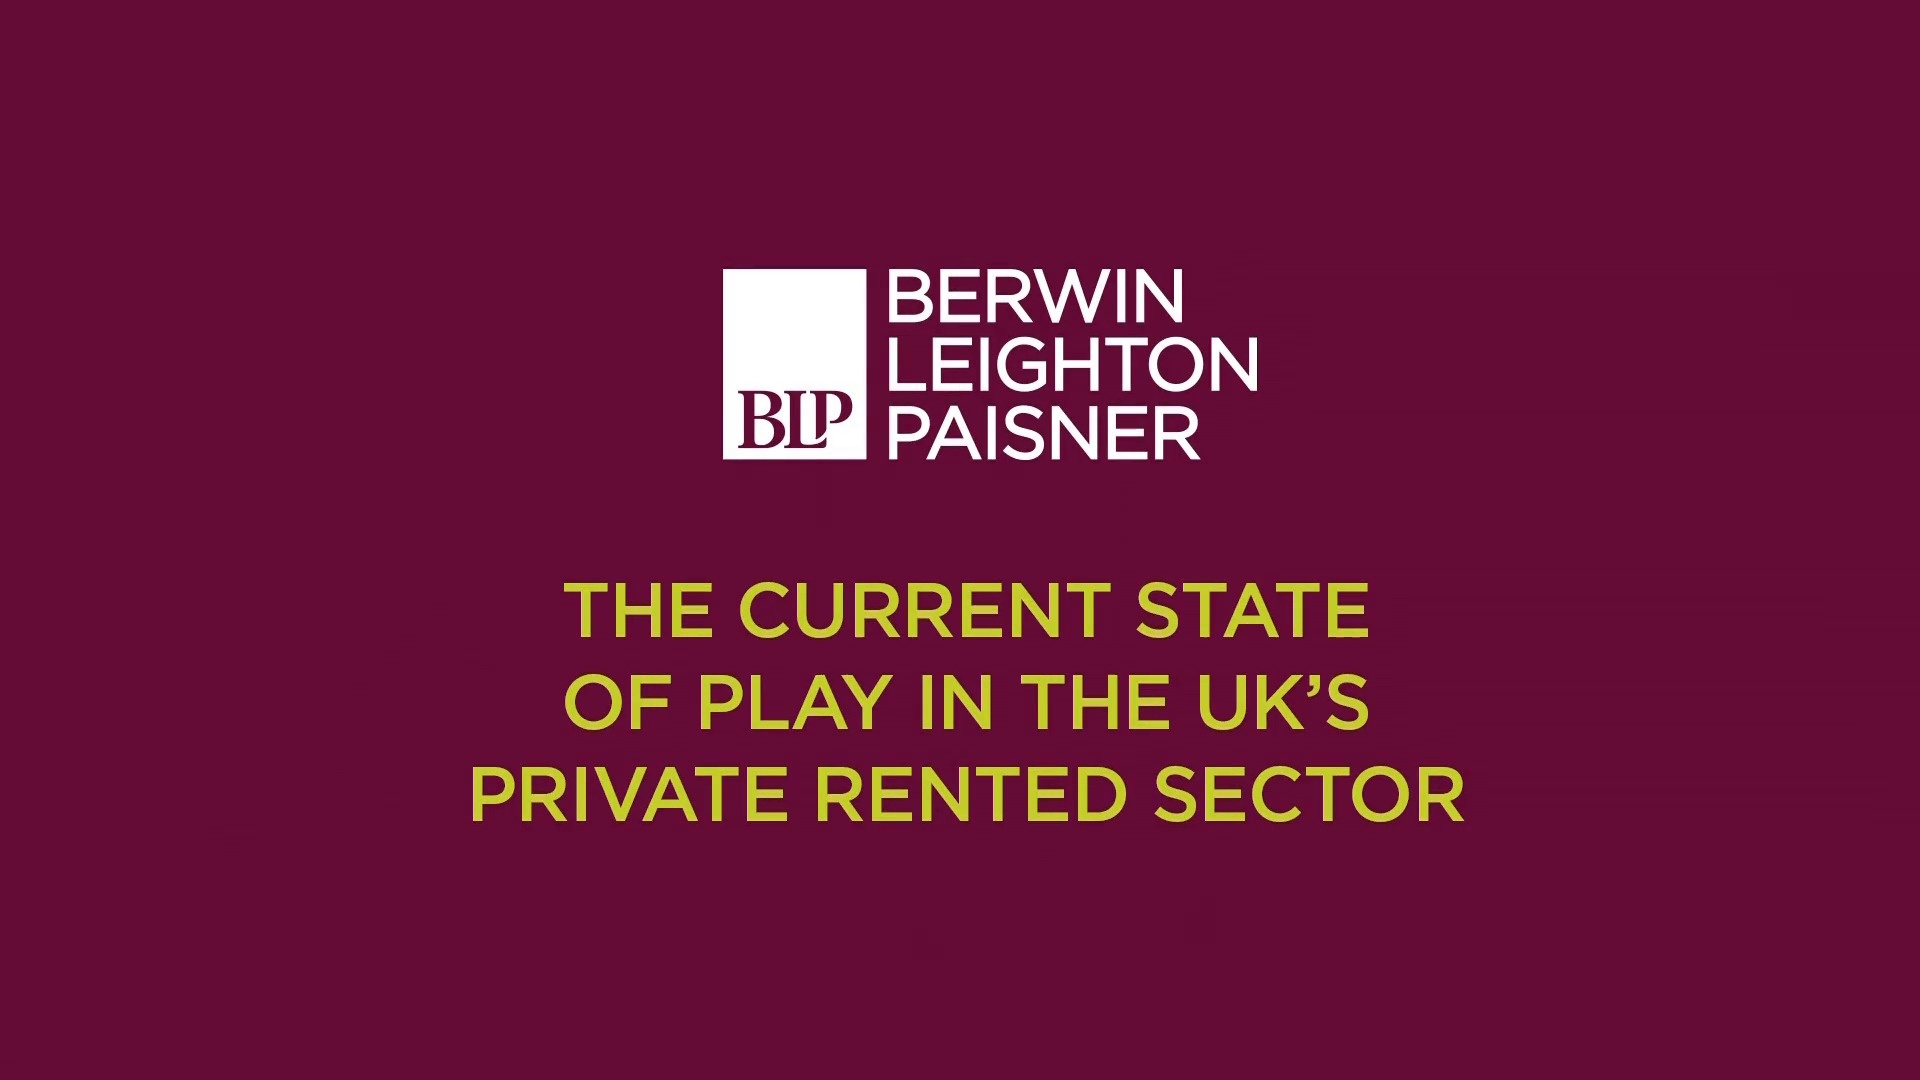 Still image from 'The current state of play in the UKs private rented sector' video